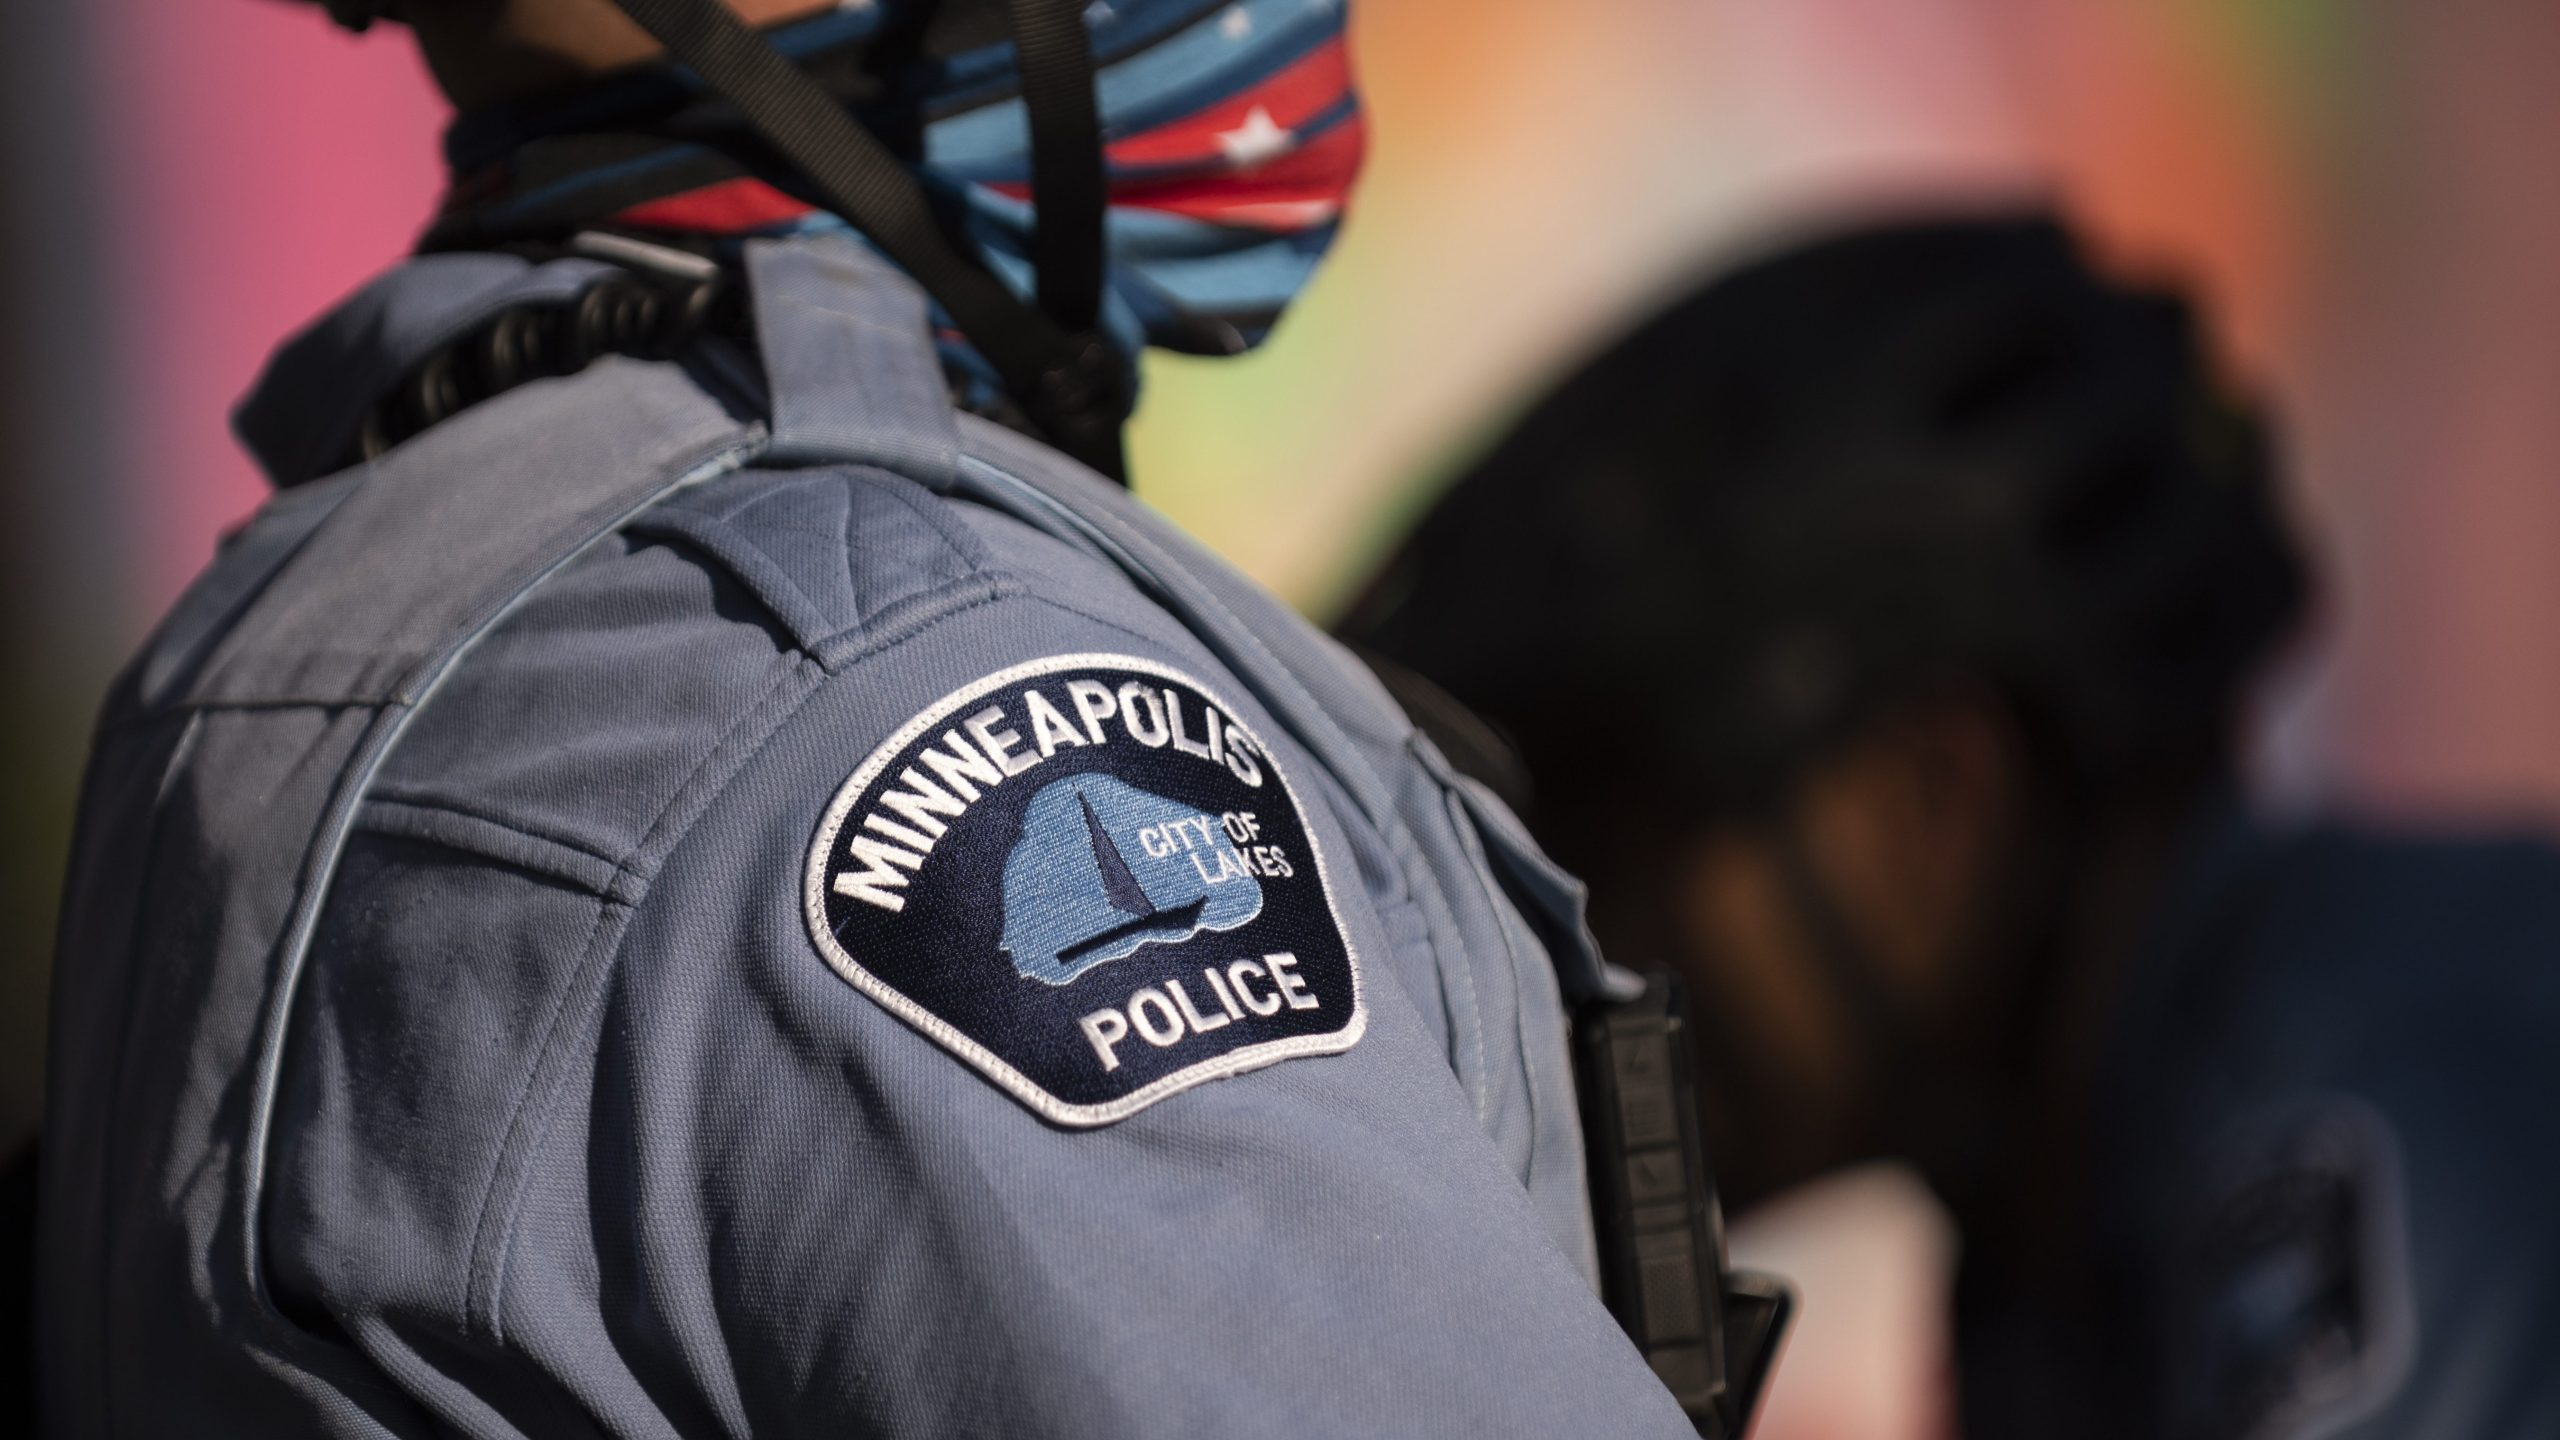 Picture of Minneapolis Police Department officer